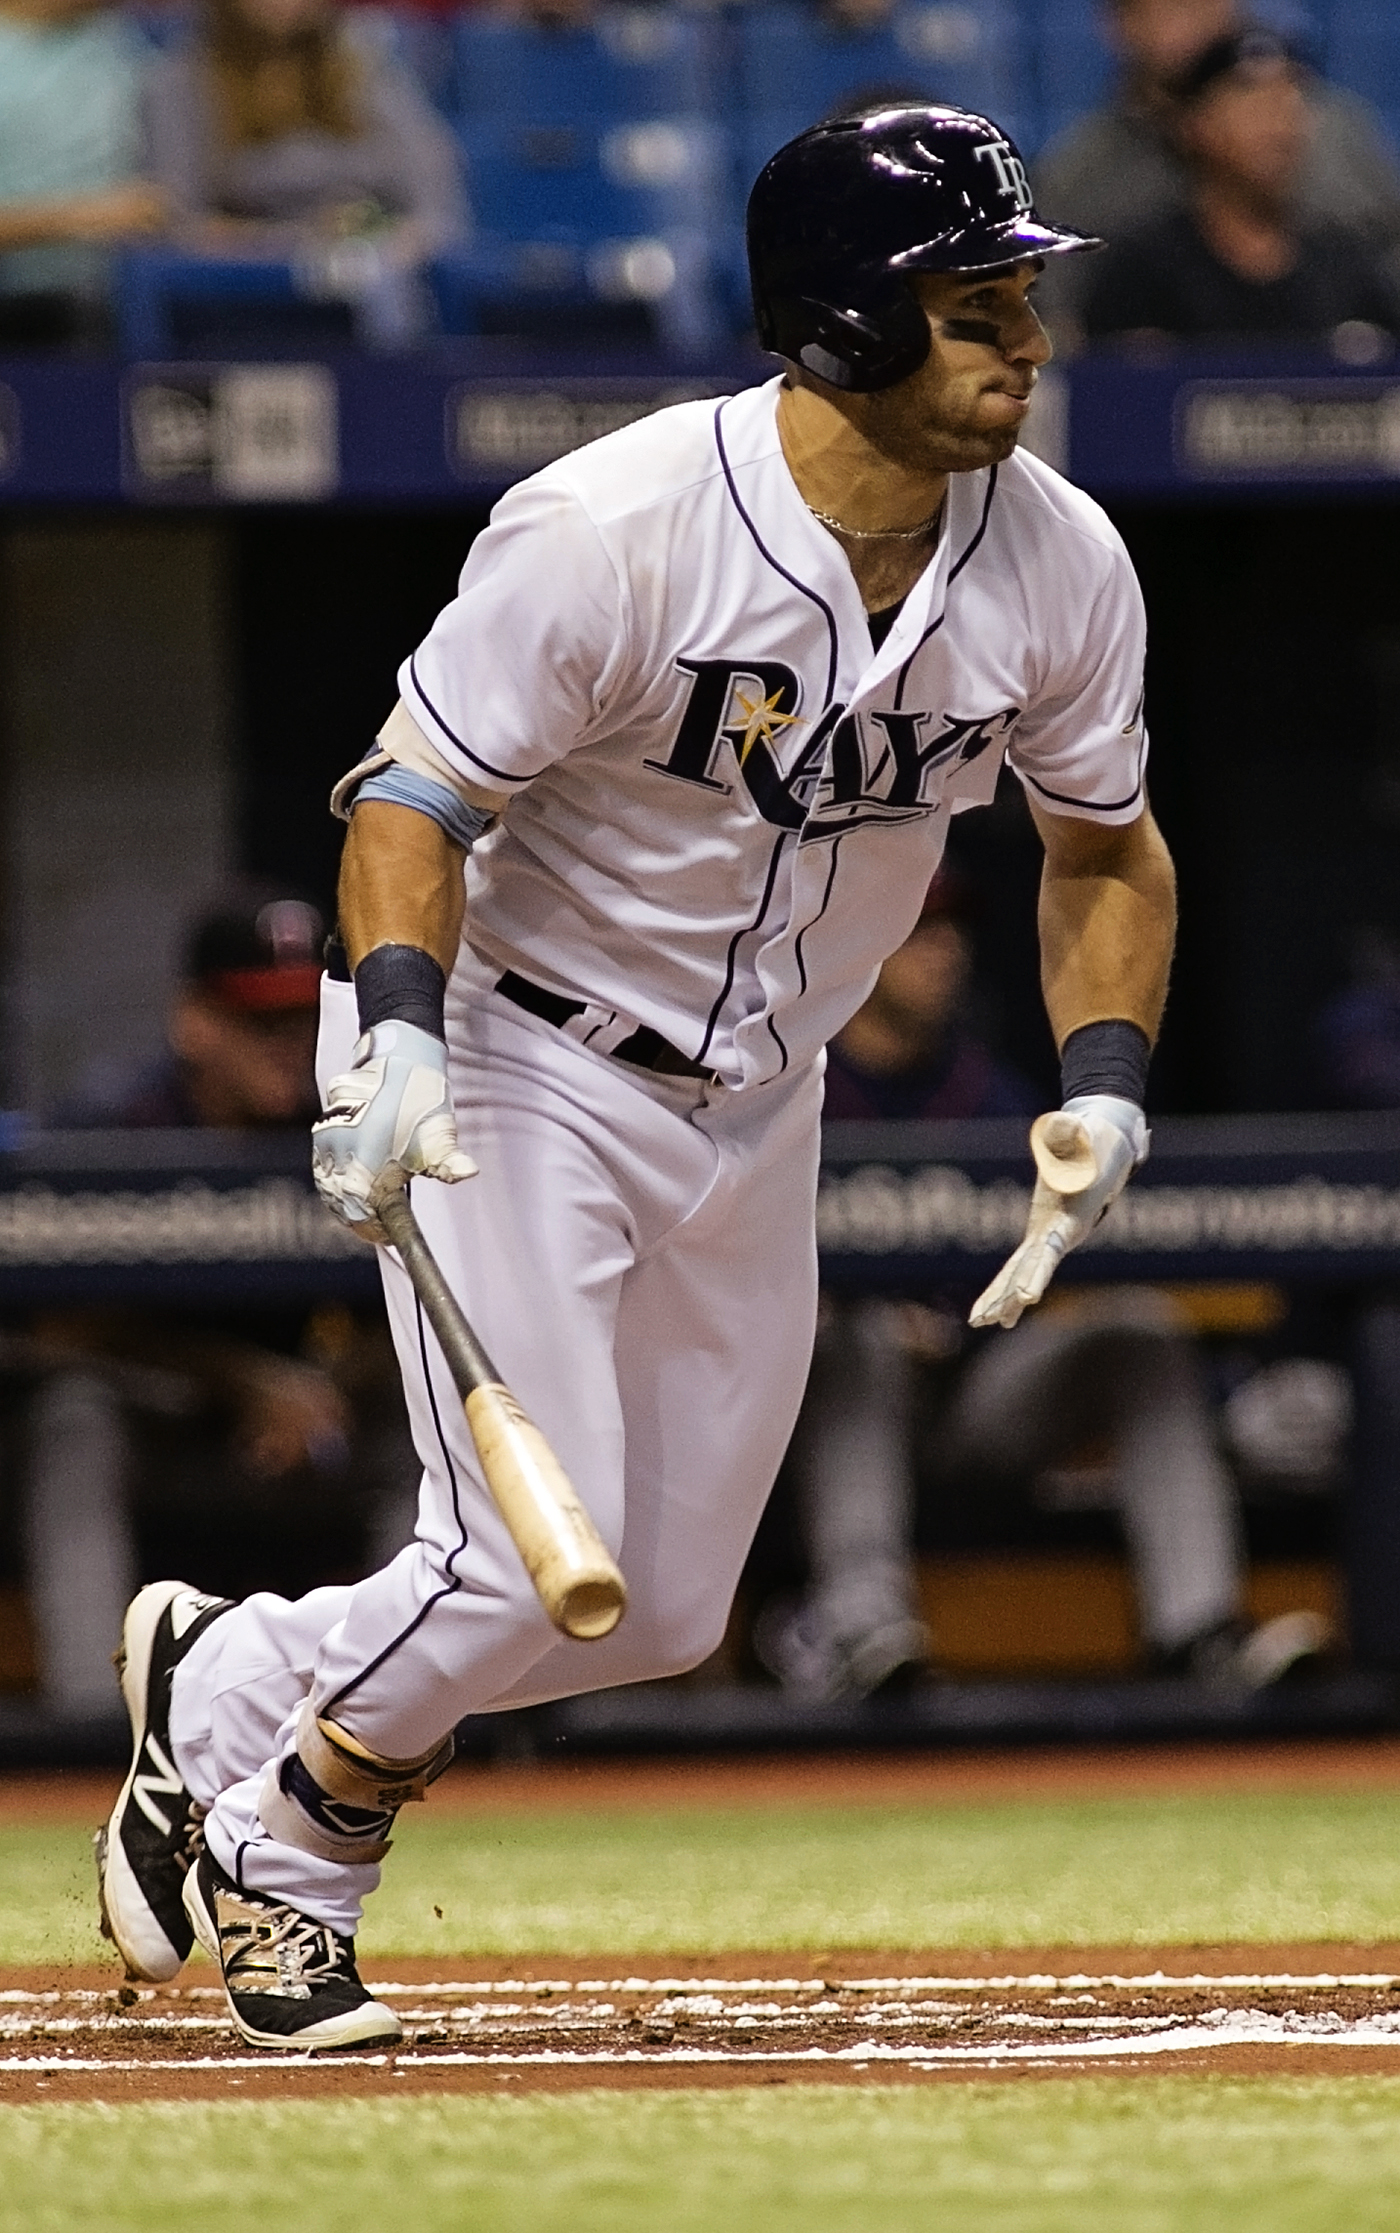 Kiermaier tied the game with a two-run homer./CARMEN MANDATO